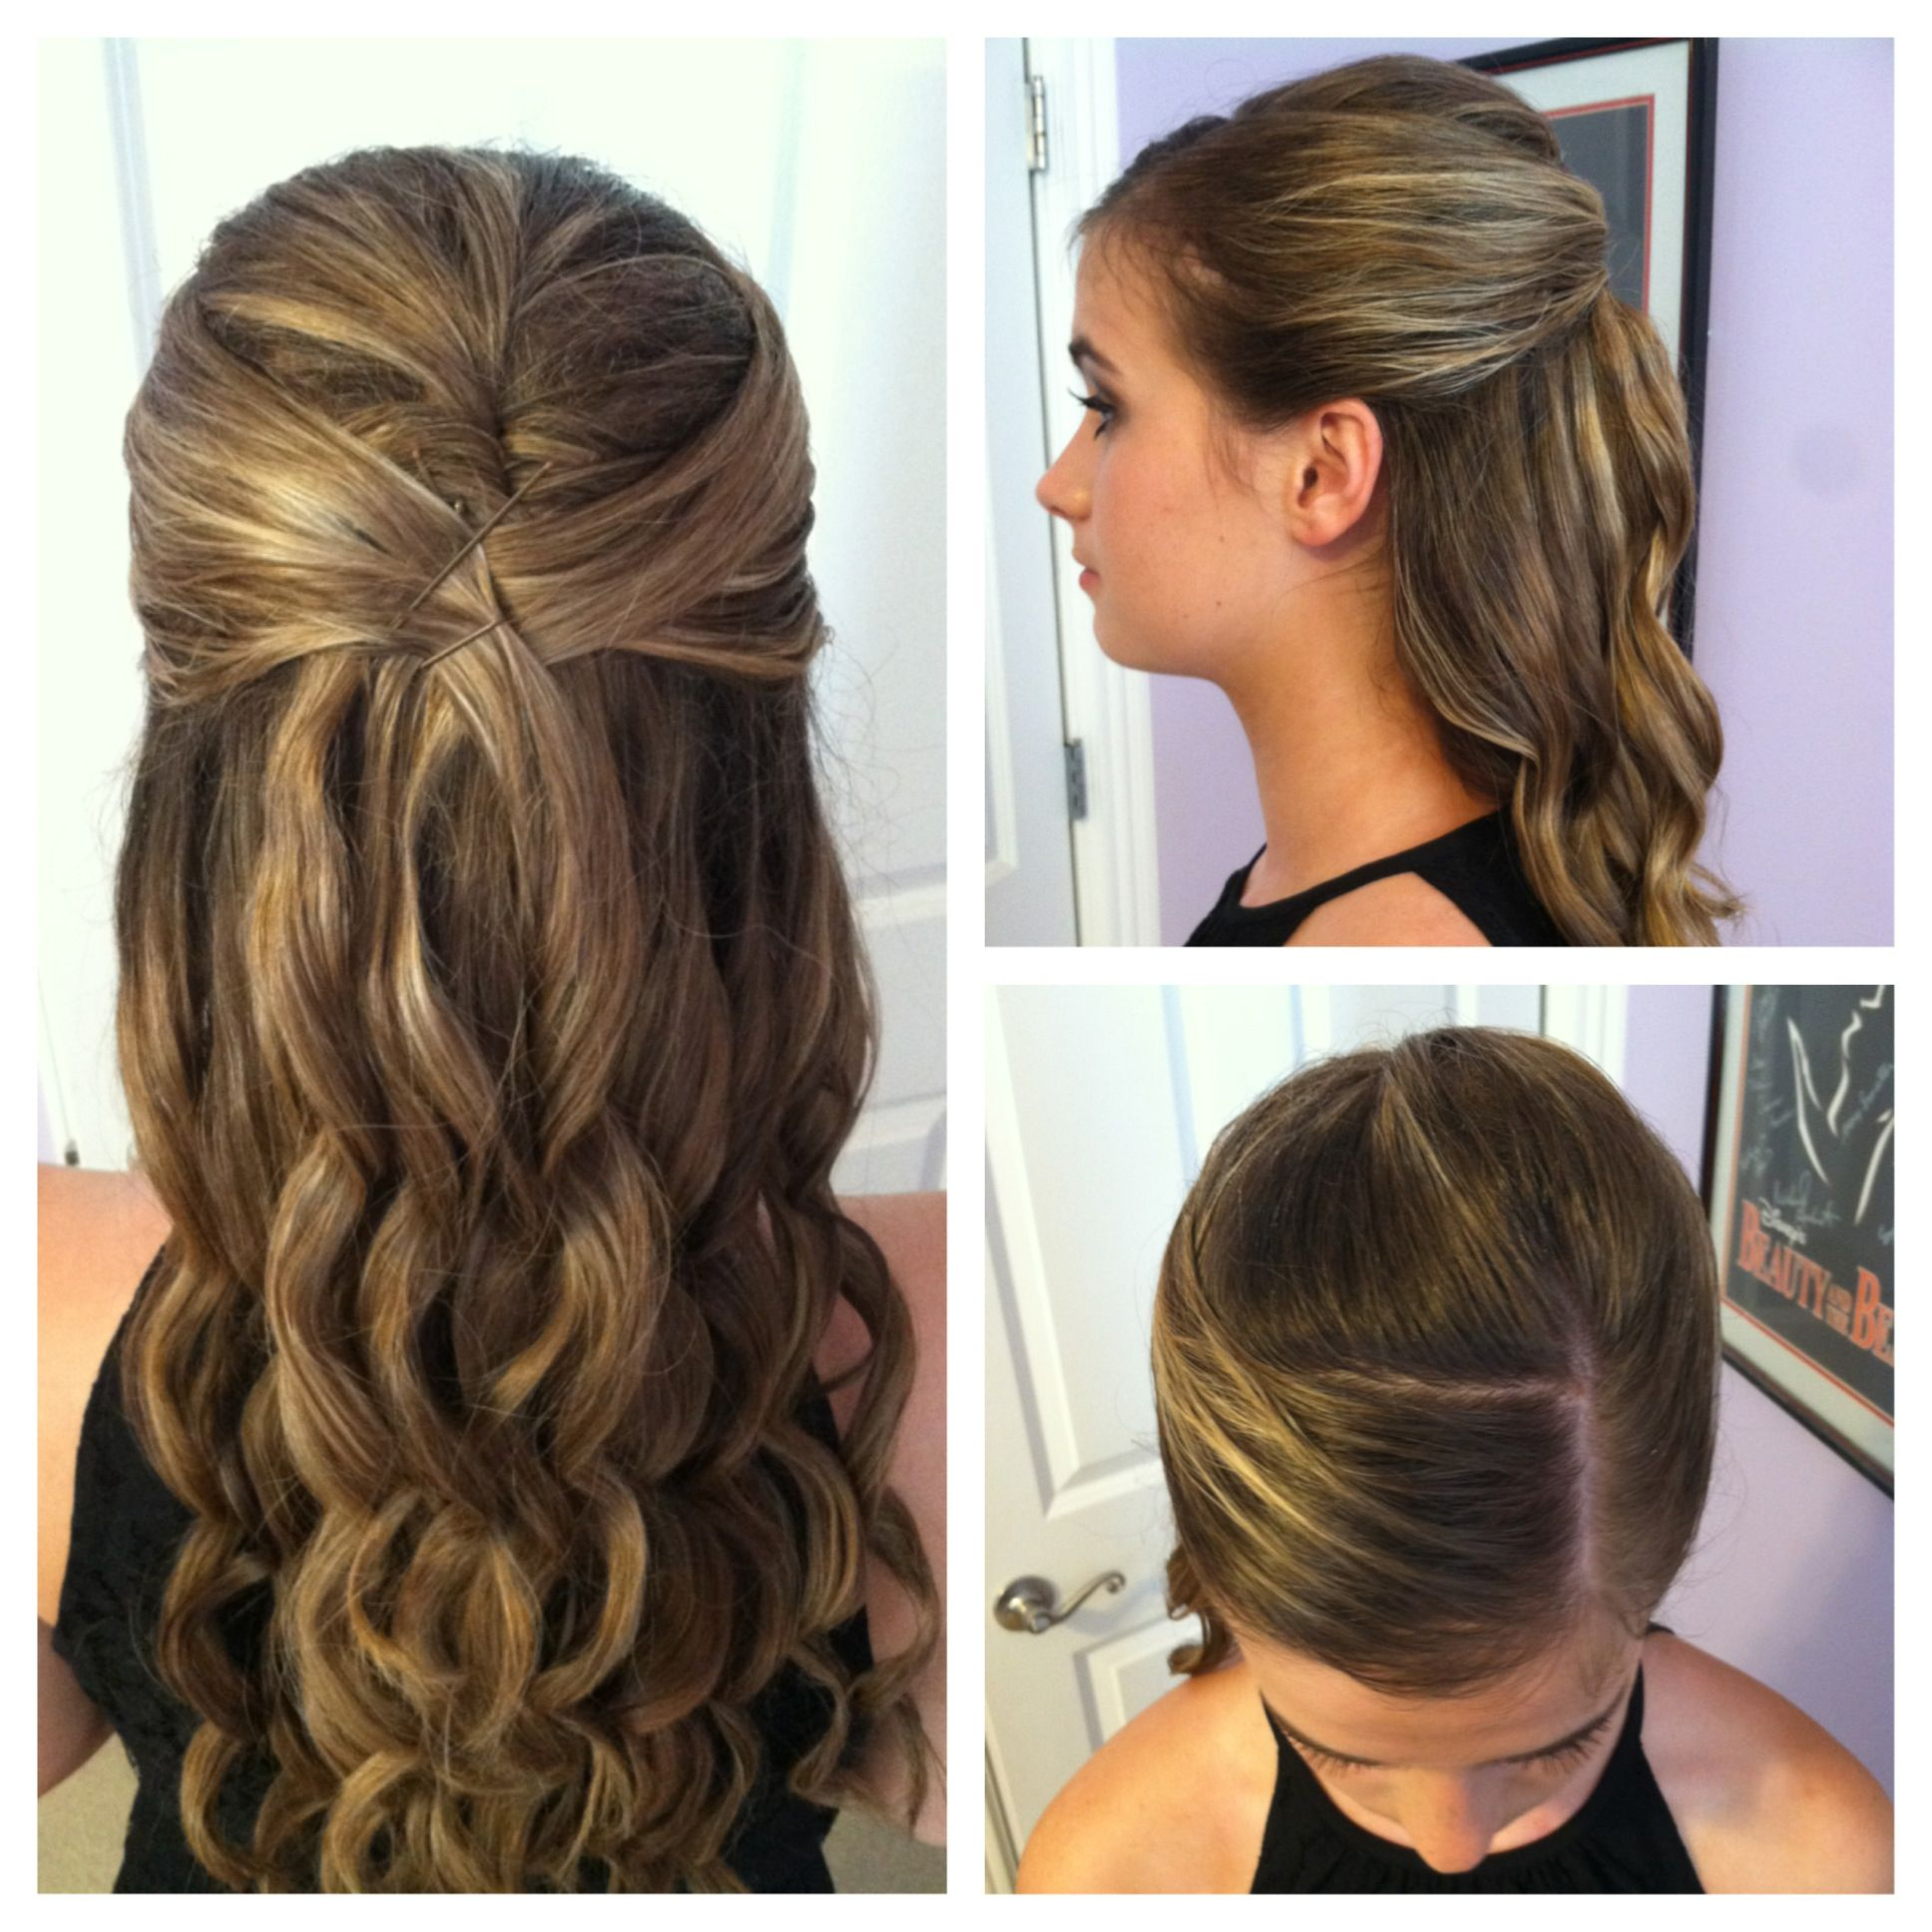 pageant hair | prom ❤ in 2019 | pageant hair, hair, pagent hair